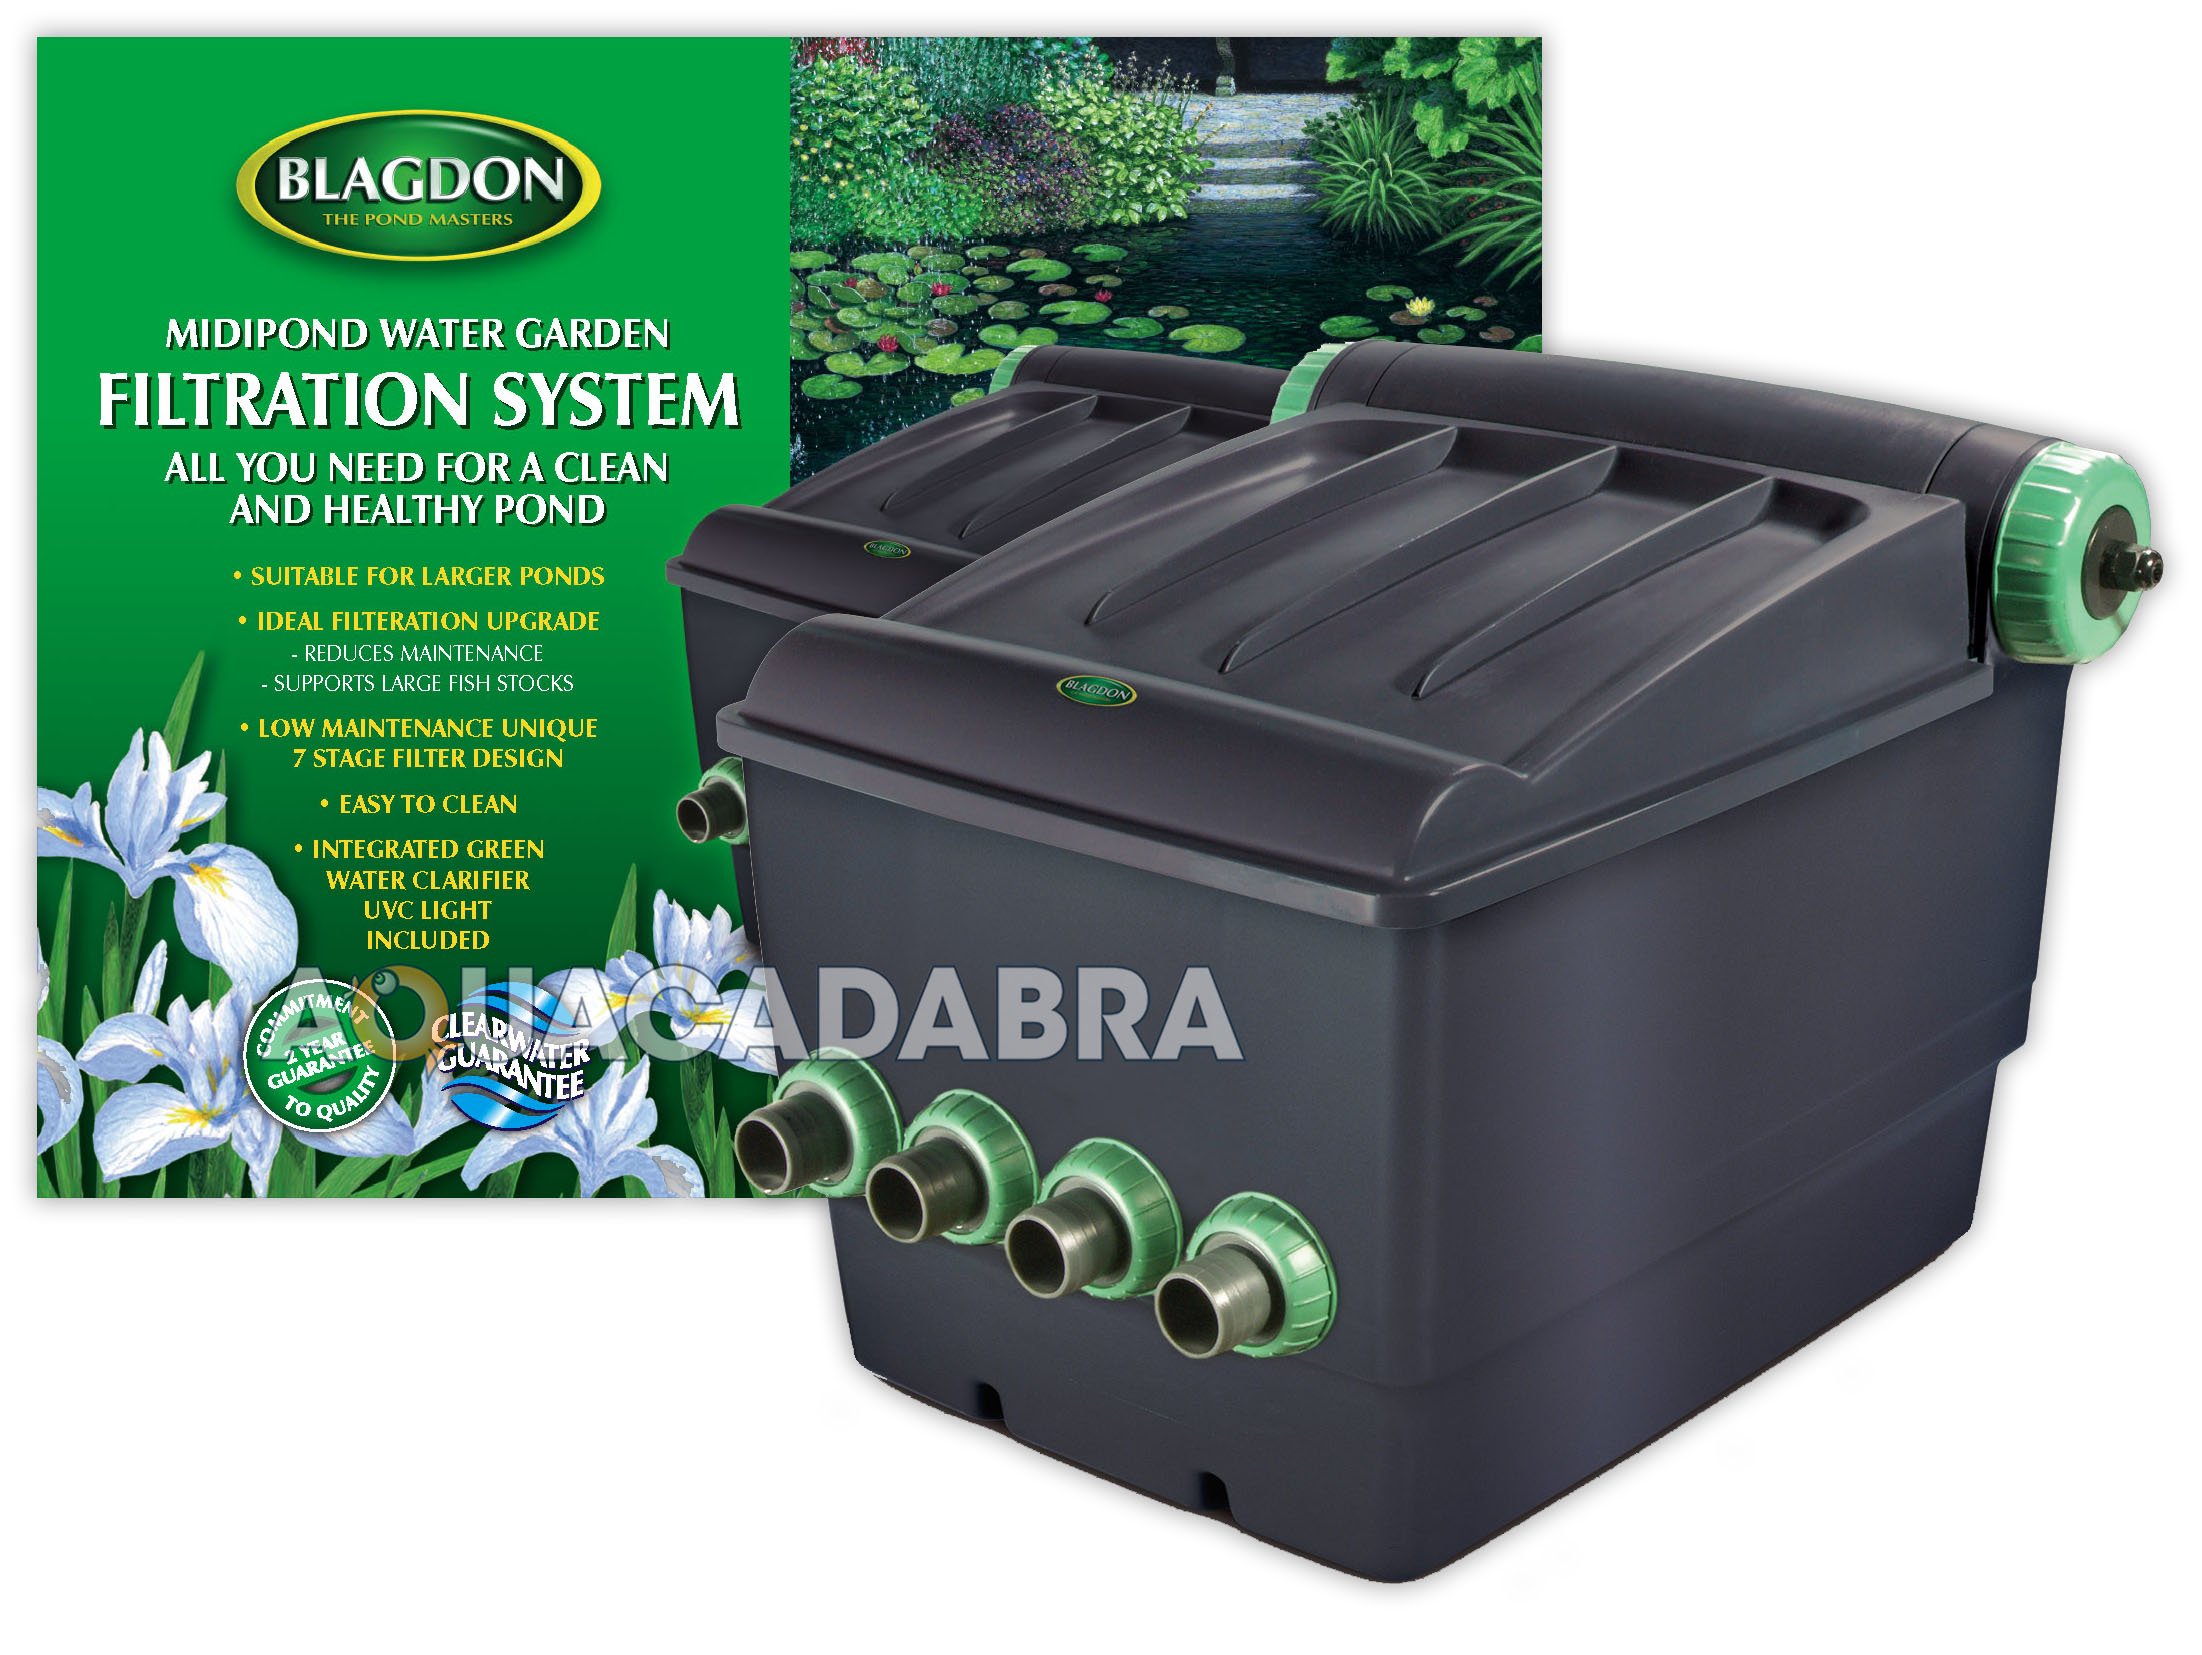 Blagdon midipond filter 10000 uv midi pond gravity uvc for Gravity fed pond filter